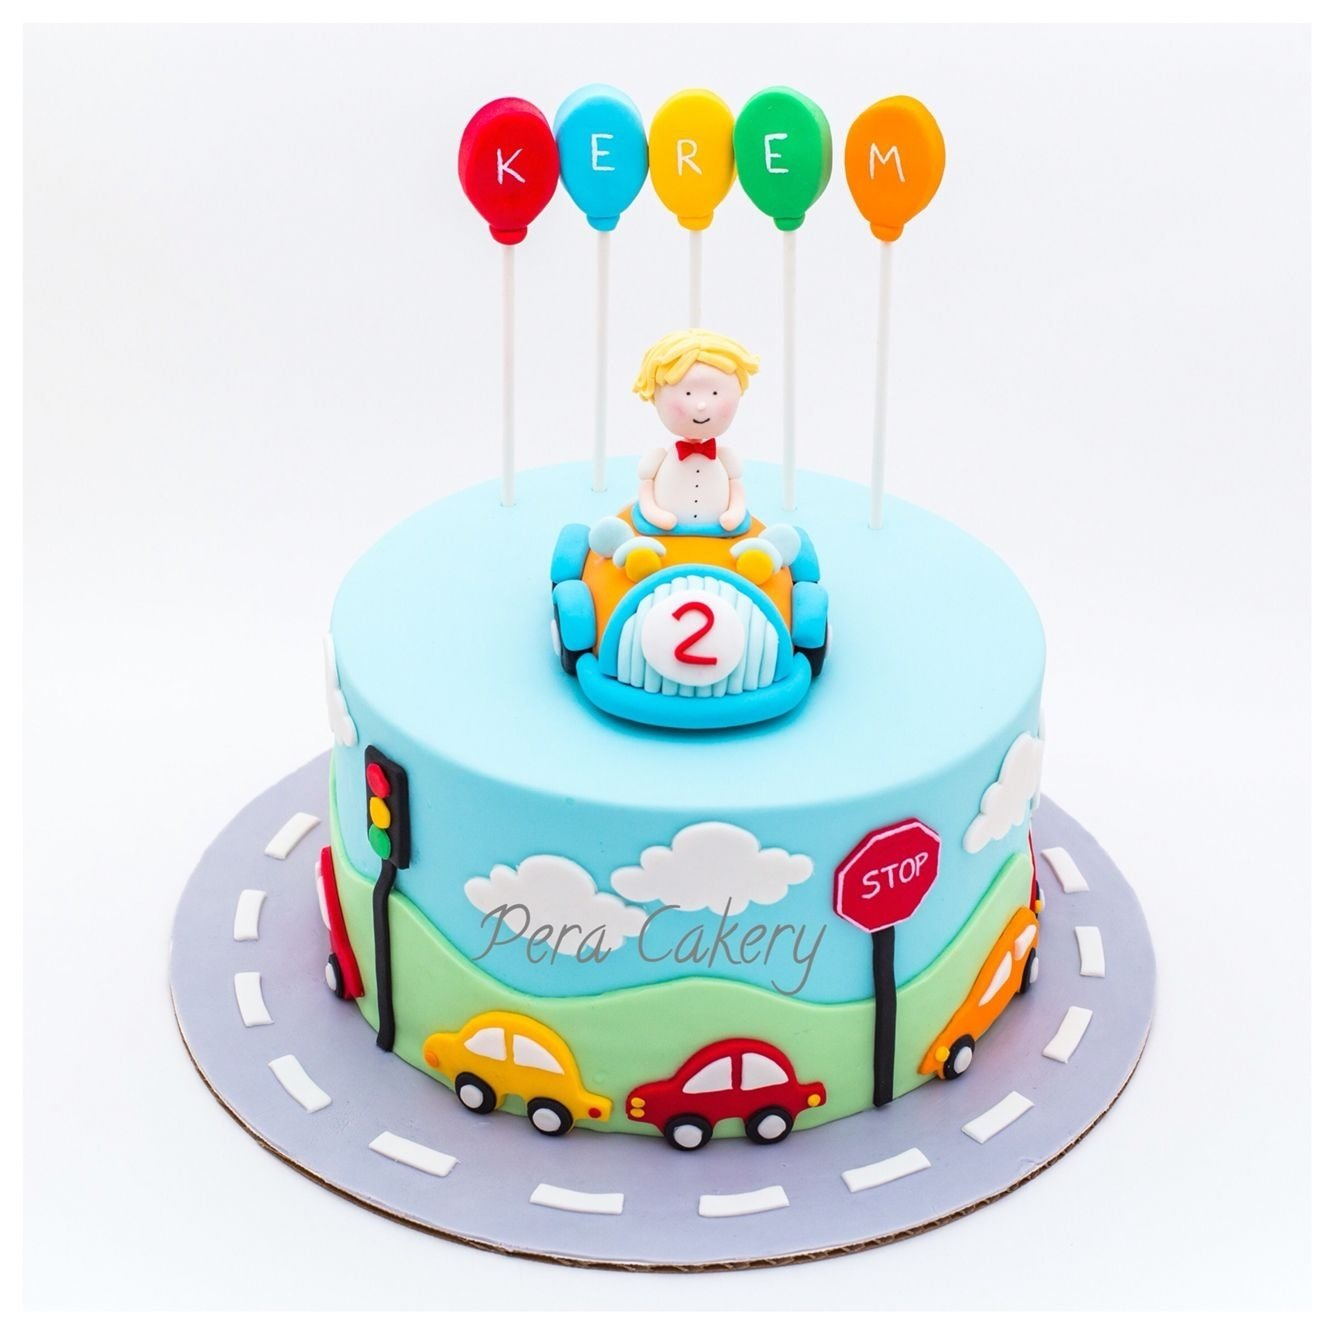 10 Amazing 2 Year Old Birthday Cake Ideas Car For A Boy